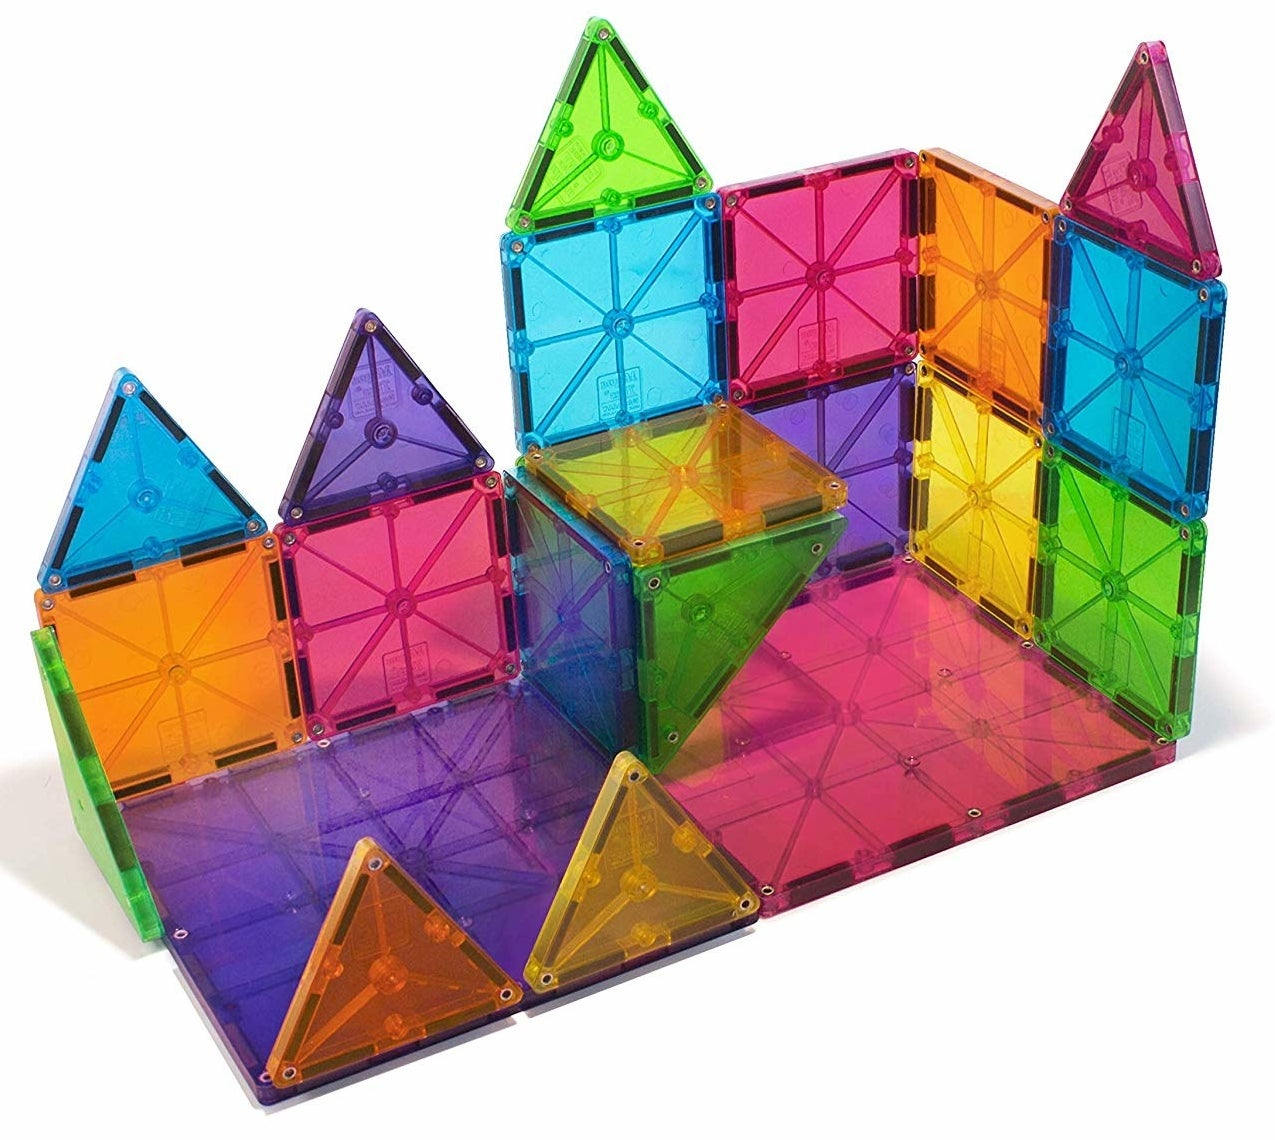 multicolored square and triangular magnetic tiles fashioned into a tower